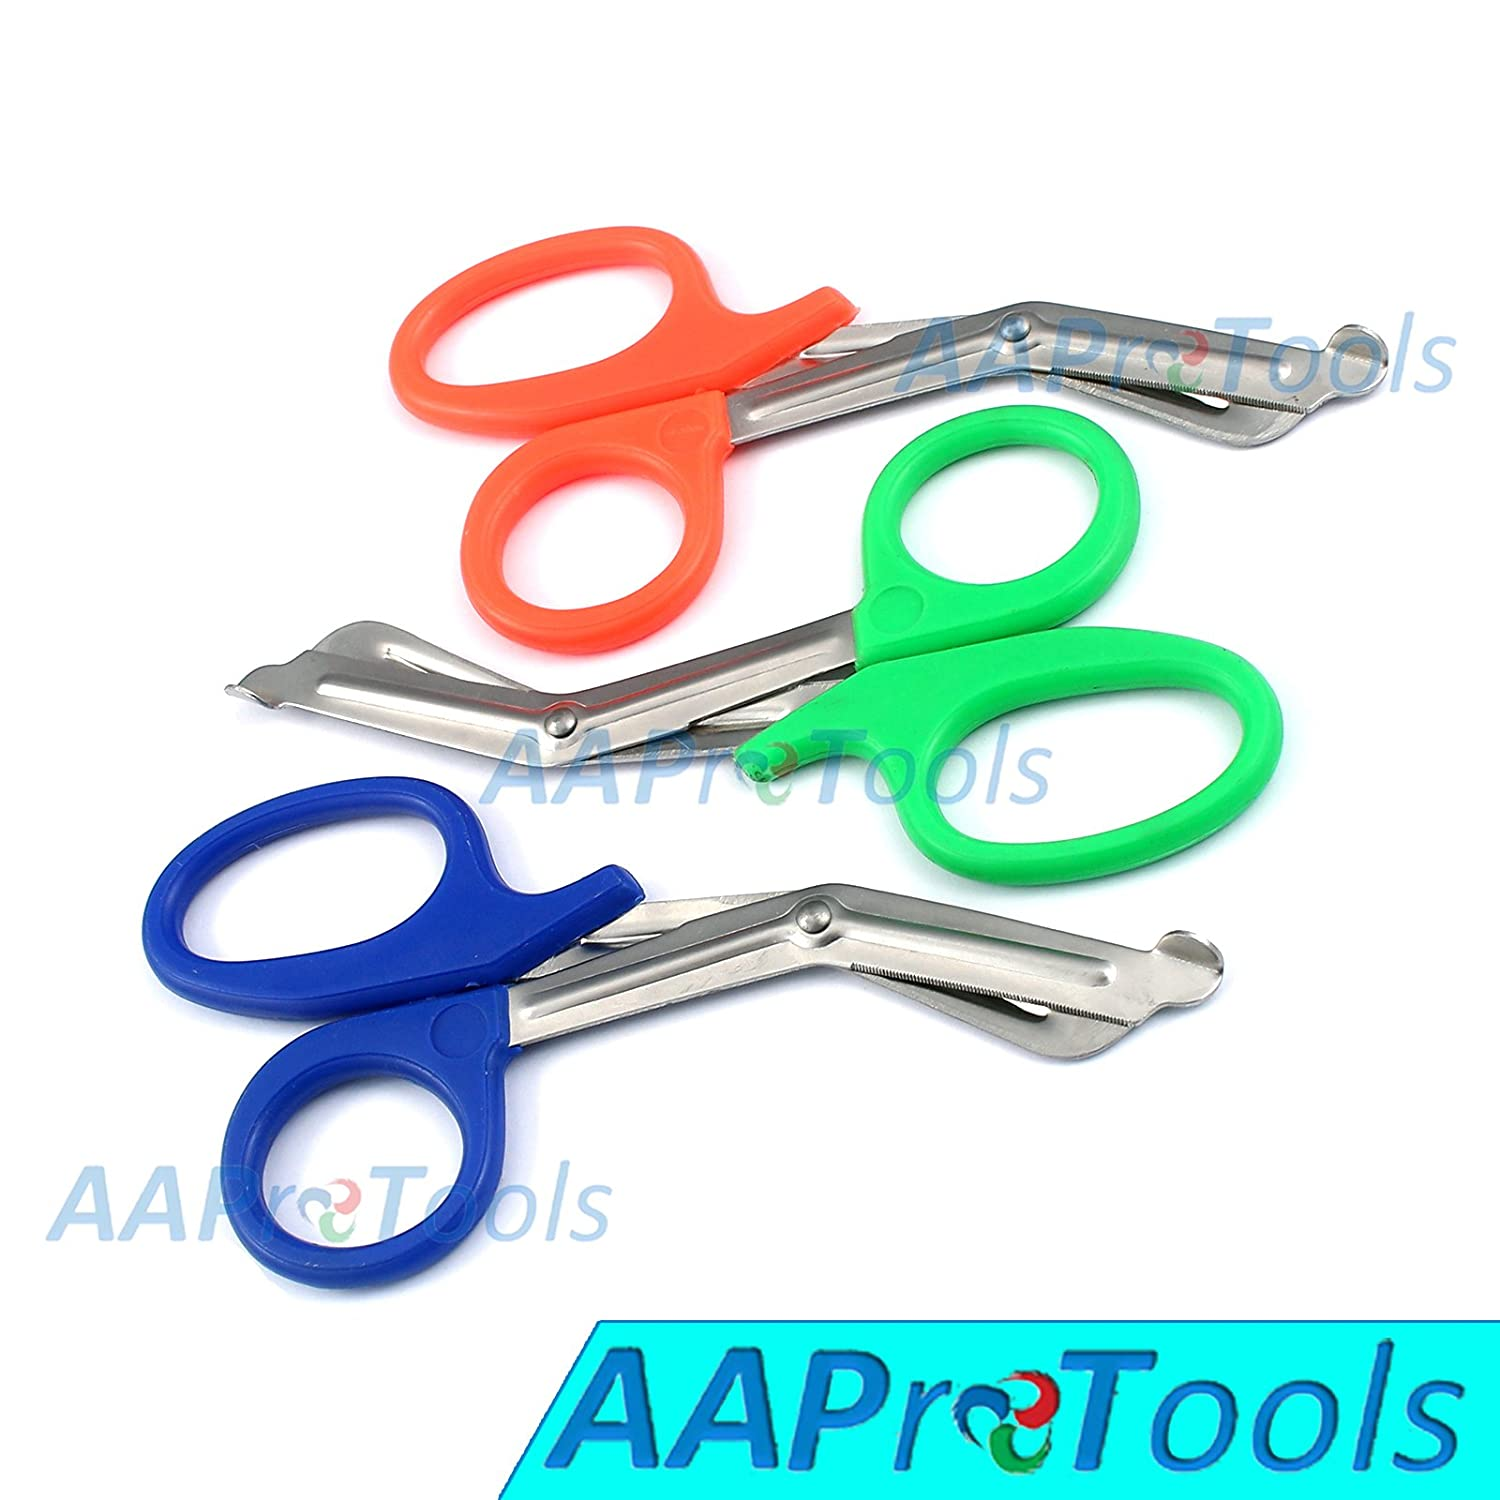 "AAPROTOOLS SET OF 3 ( ORANGE GREEN BLUE ) TRAUMA PARAMEDIC EMT SHEARS SCISSORS 7.5"" A+ QUALITY"